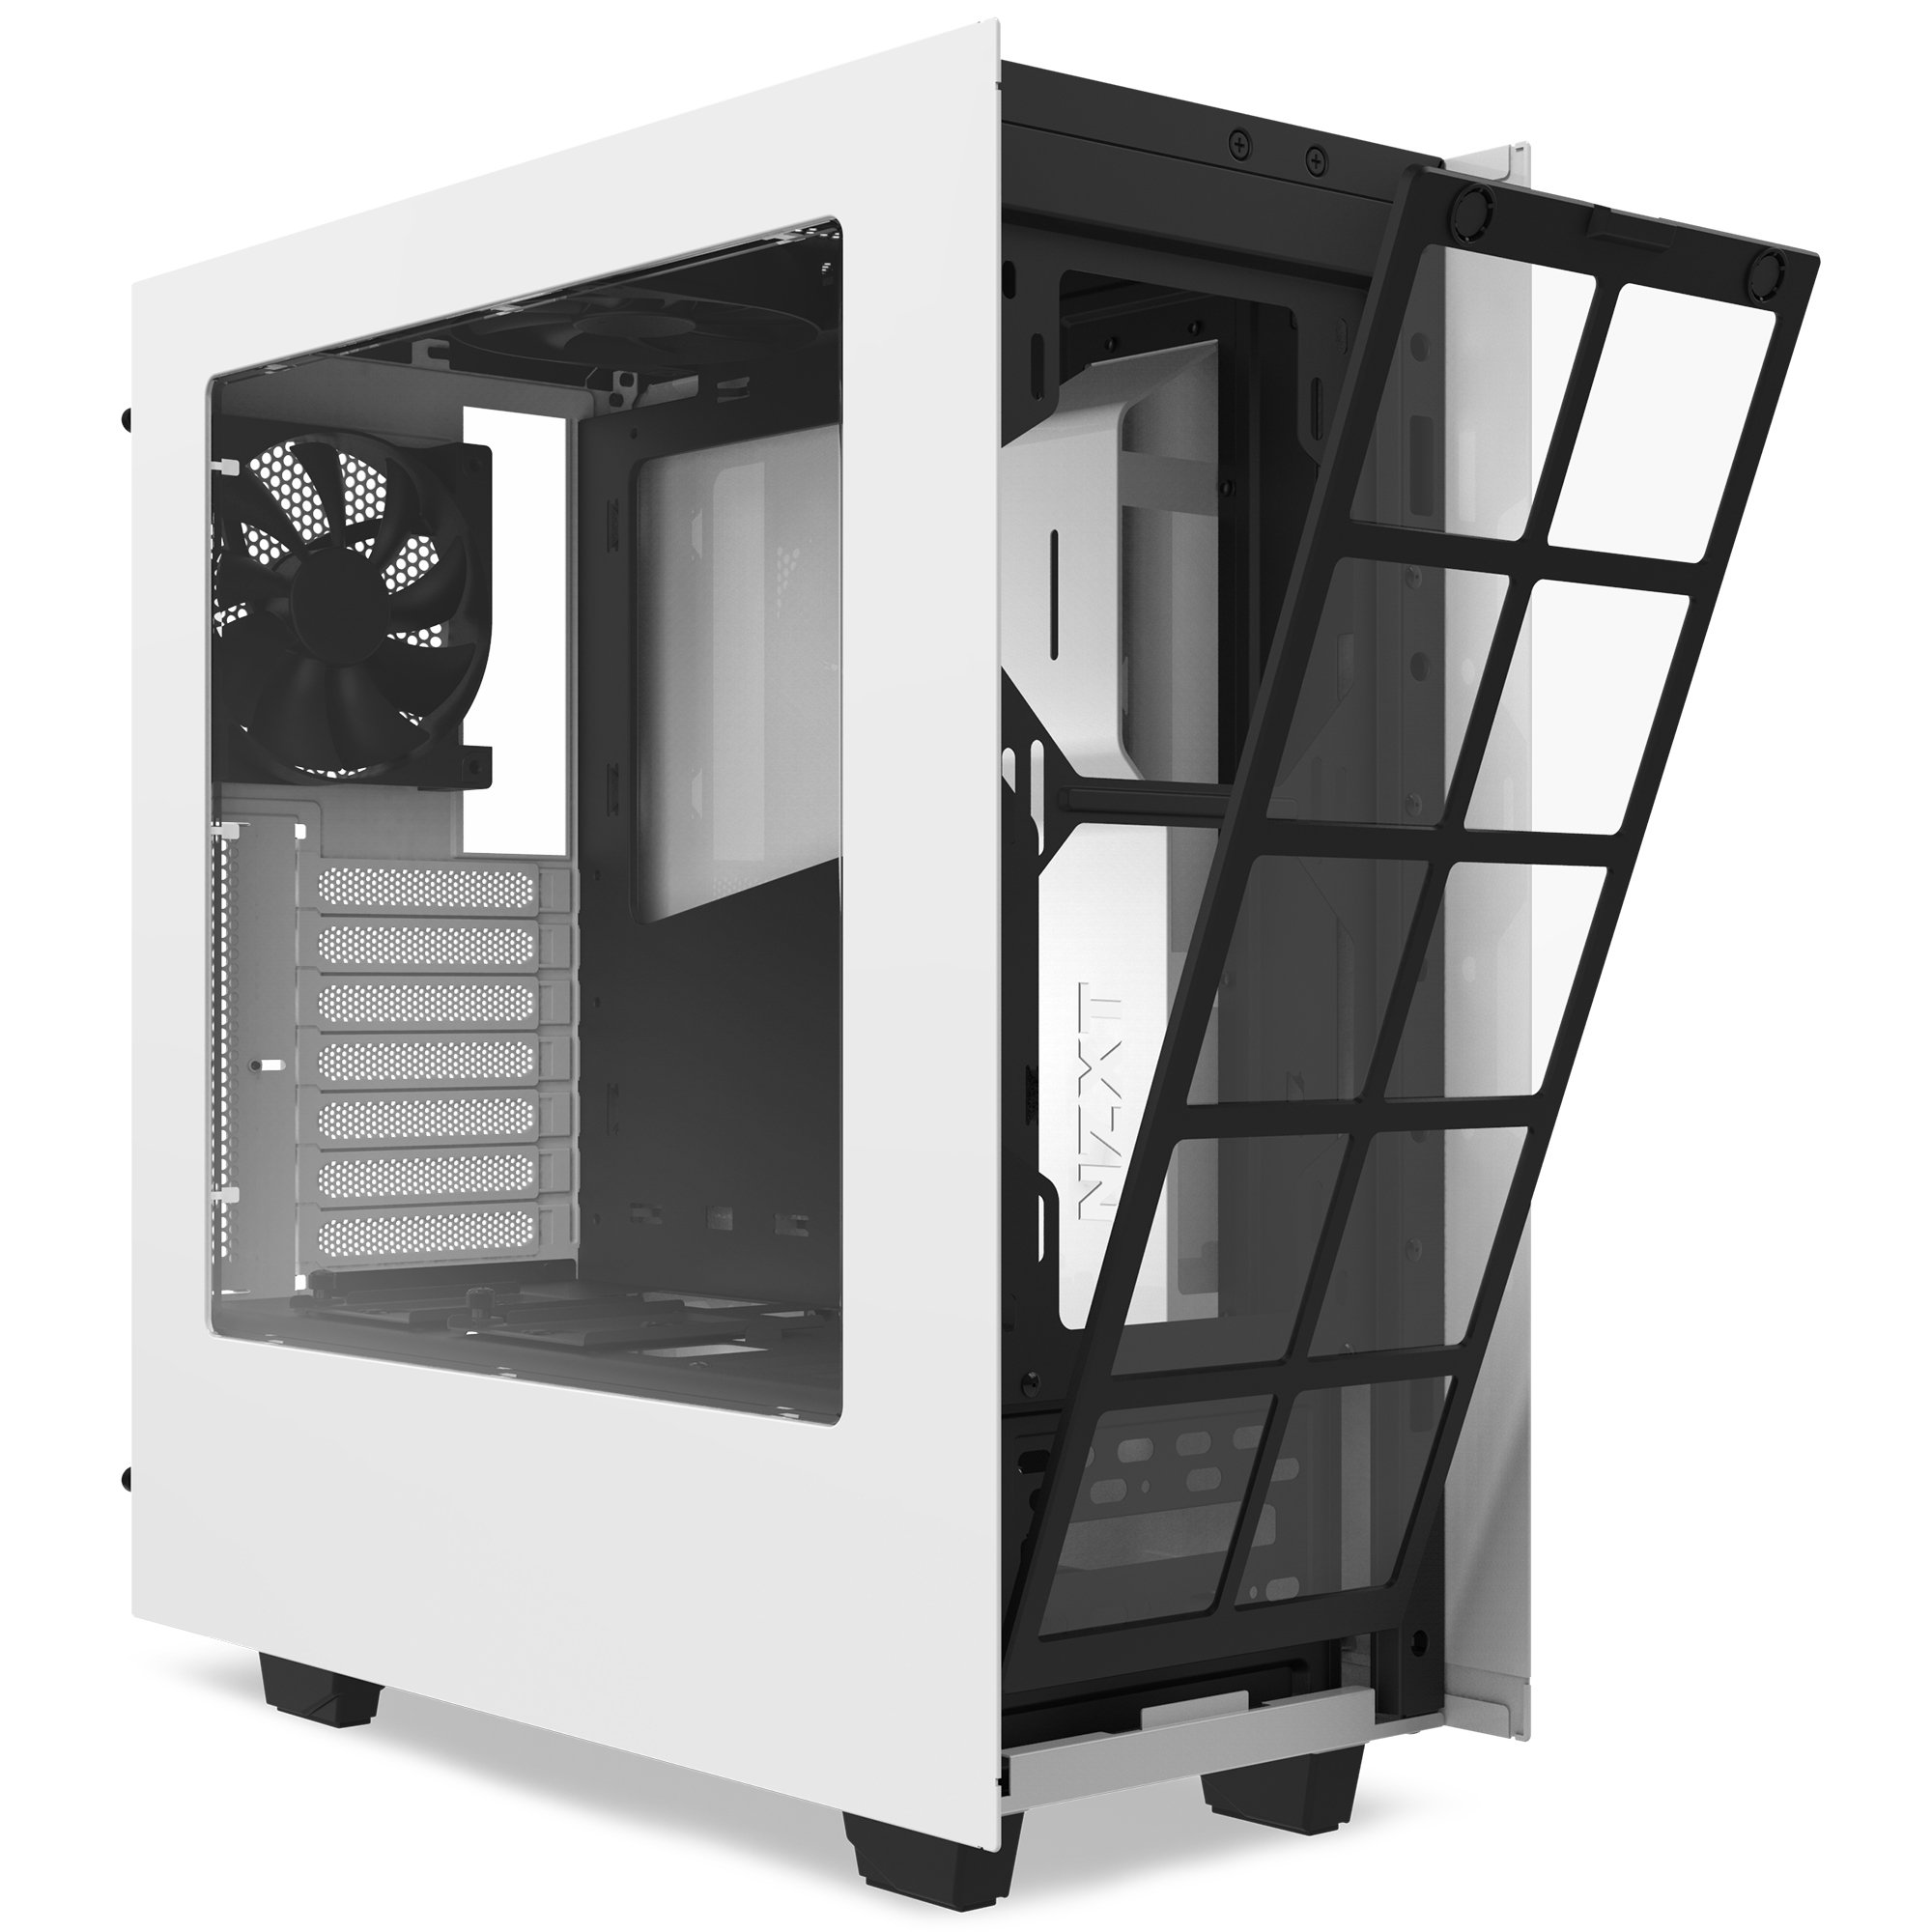 NZXT S340 Mid Tower Computer Case, White (CA-S340W-W1) by Nzxt (Image #6)